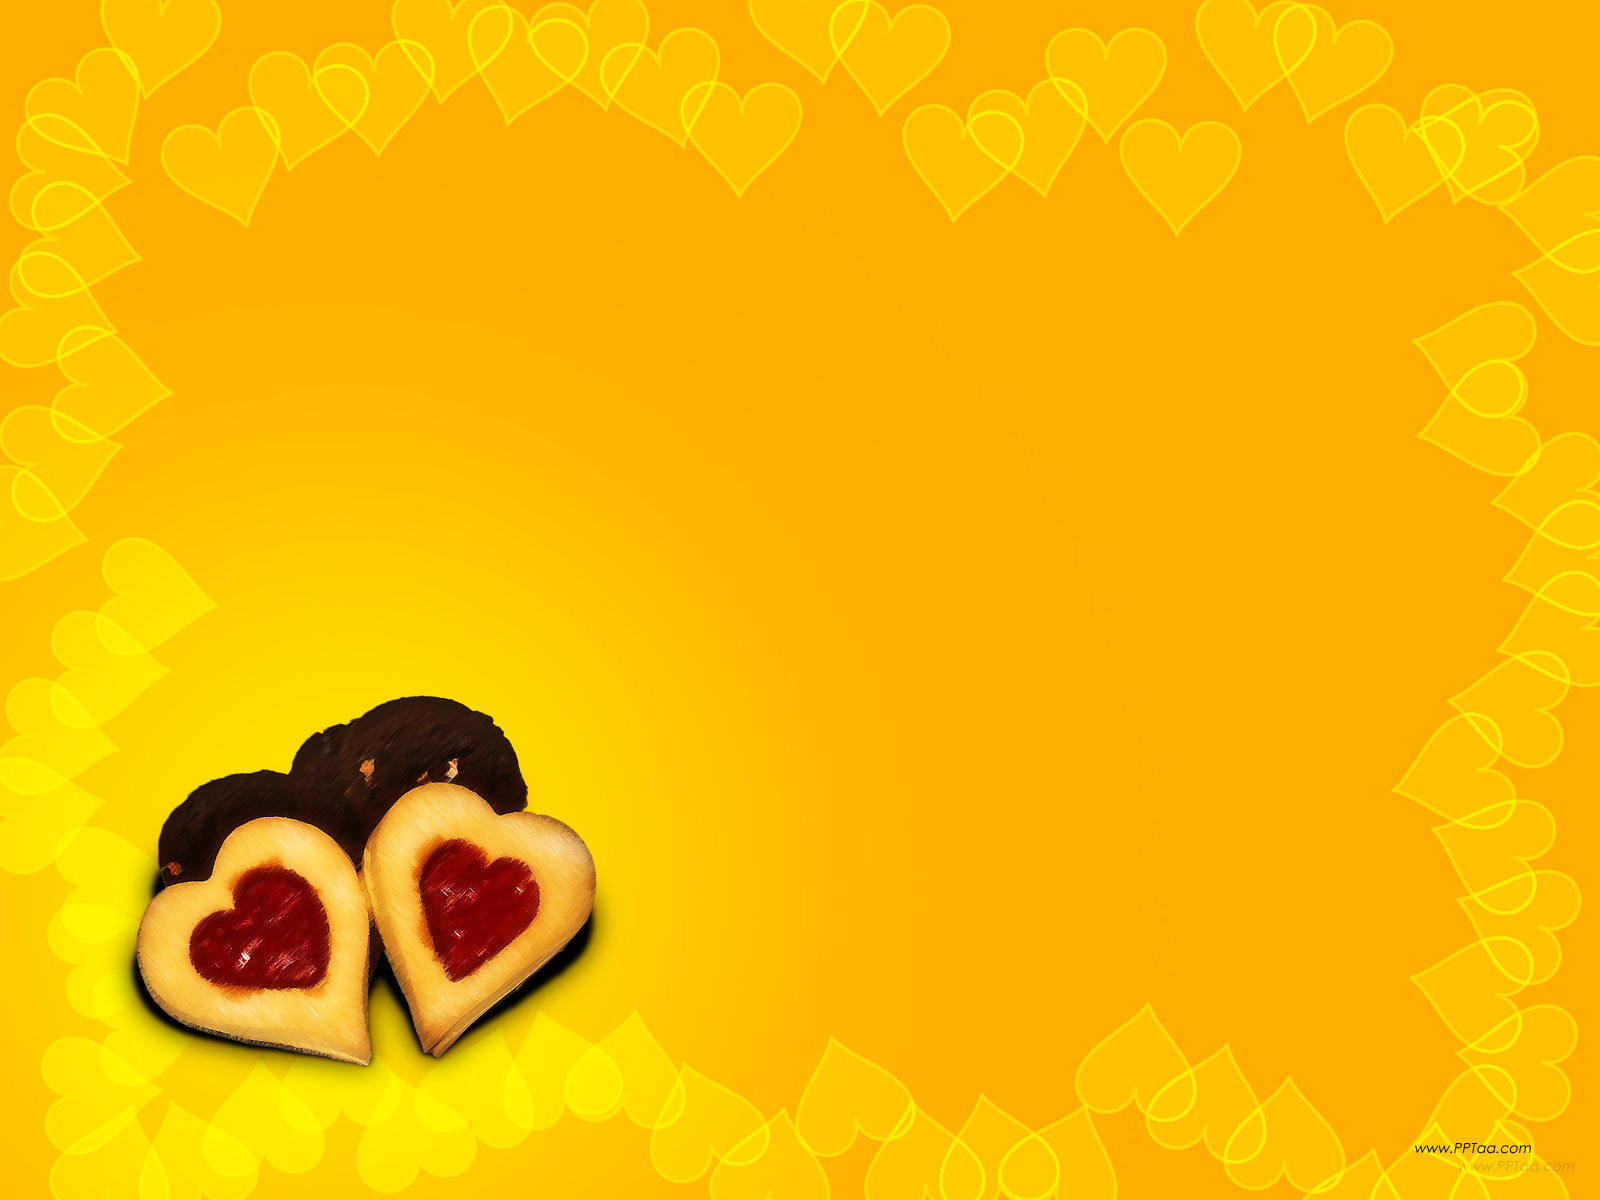 love frame ppt backgrounds 1024x768 resolutions love